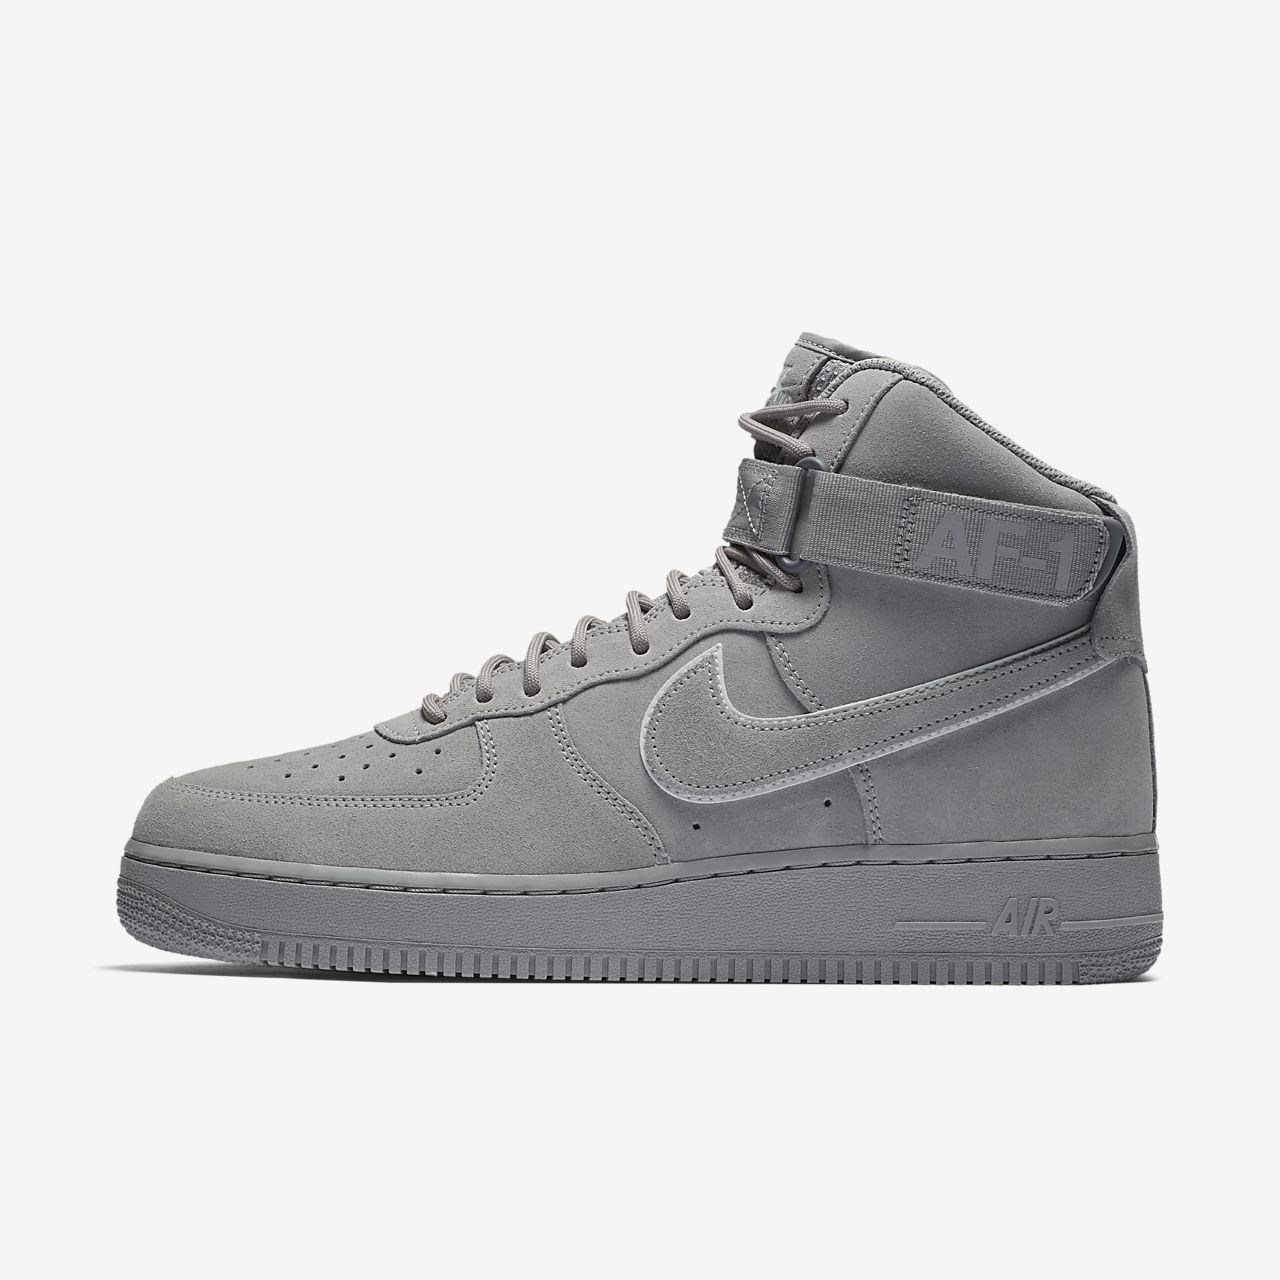 Nike SF Air Force 1 Mid Men's Lifestyle Shoes Grey zD2102Q